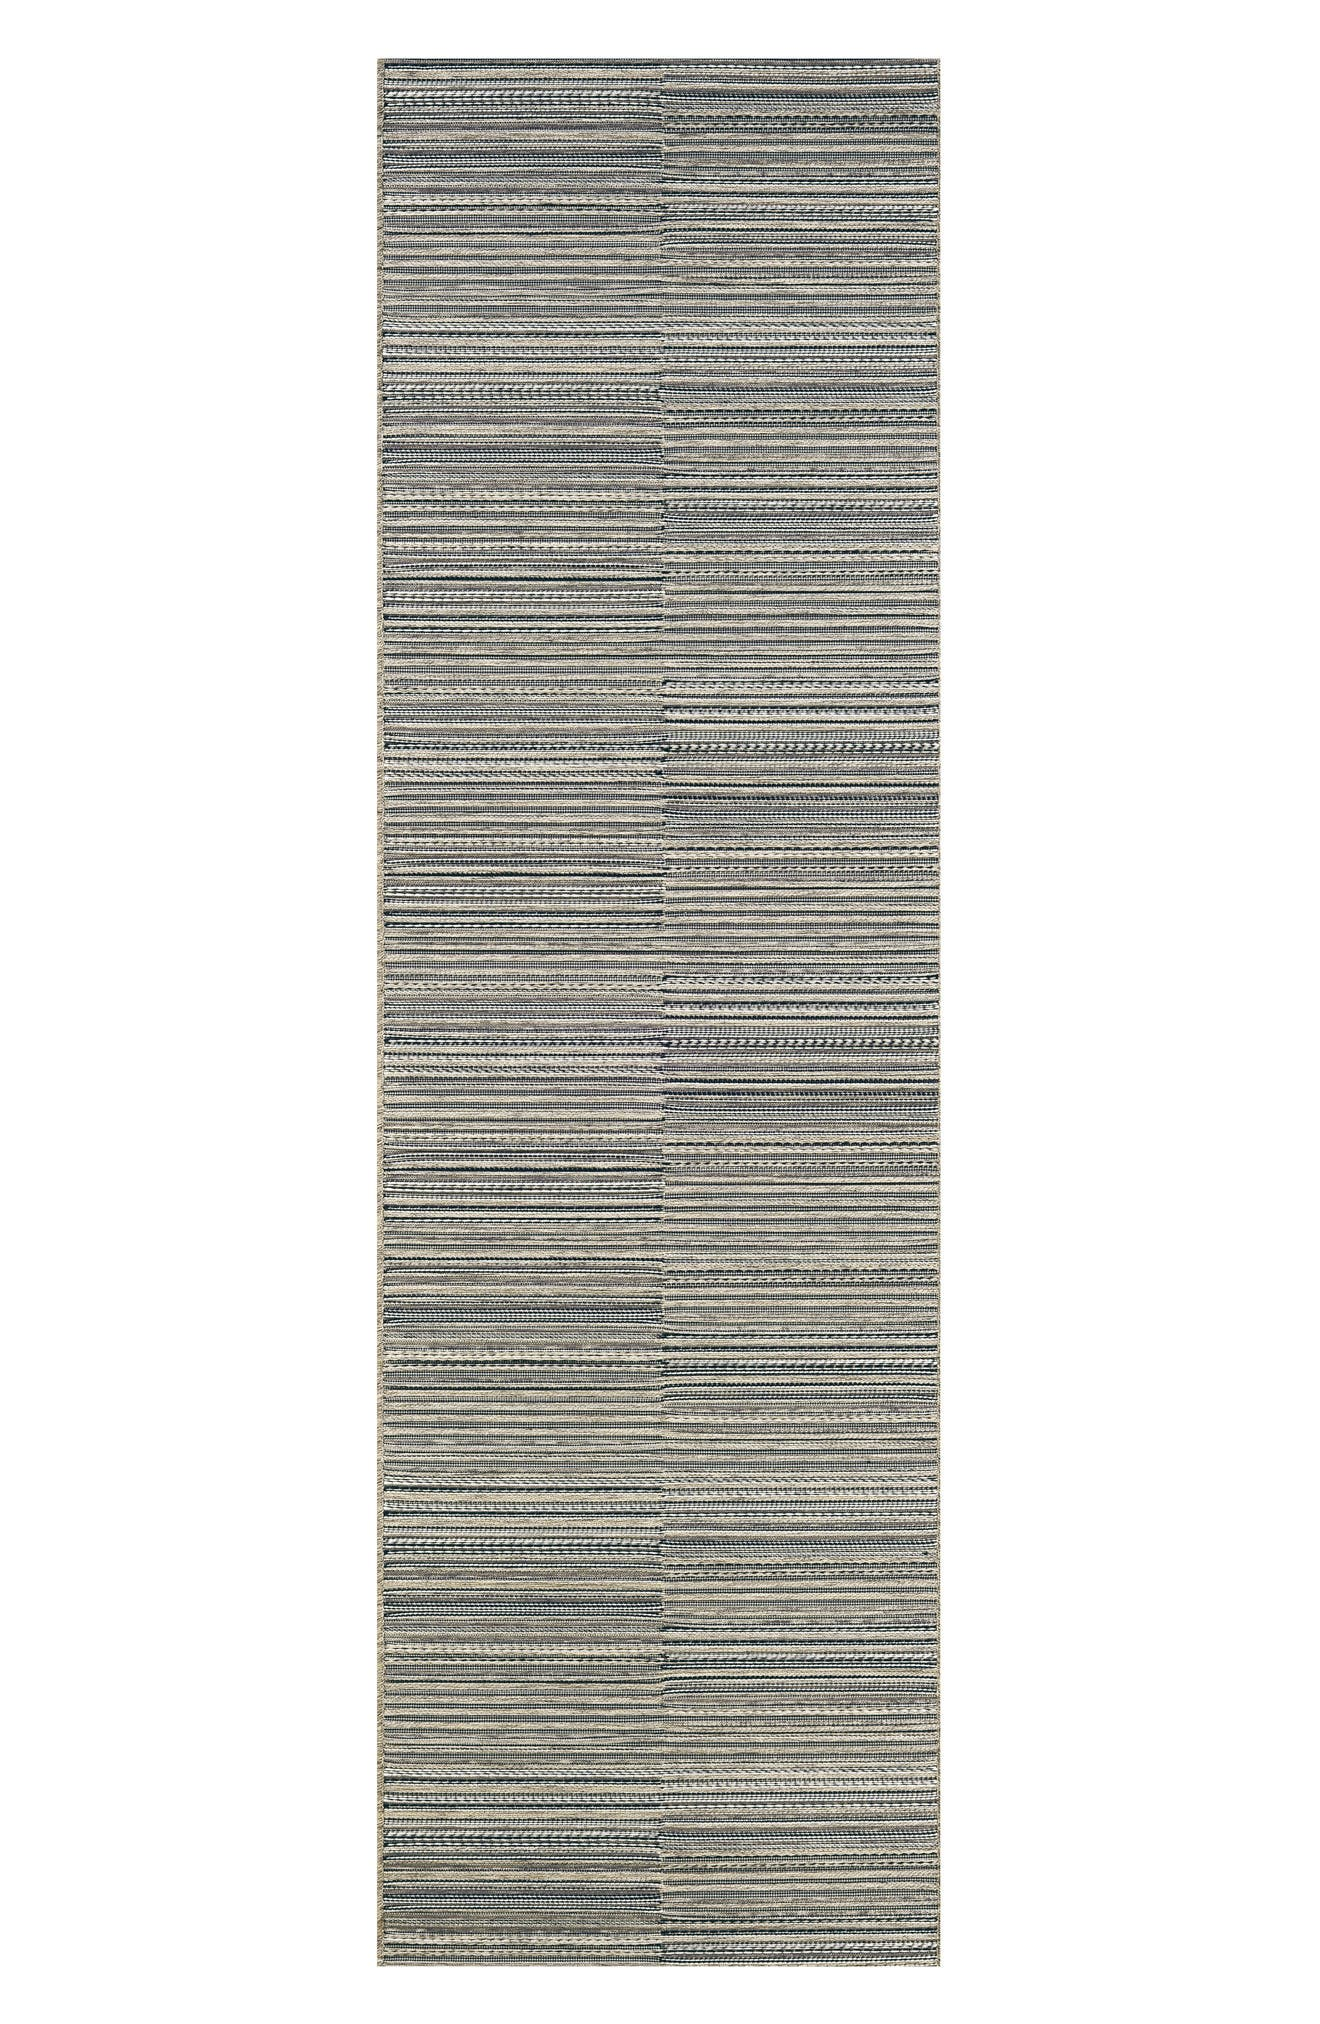 Hyannis Indoor/Outdoor Rug,                             Alternate thumbnail 2, color,                             001